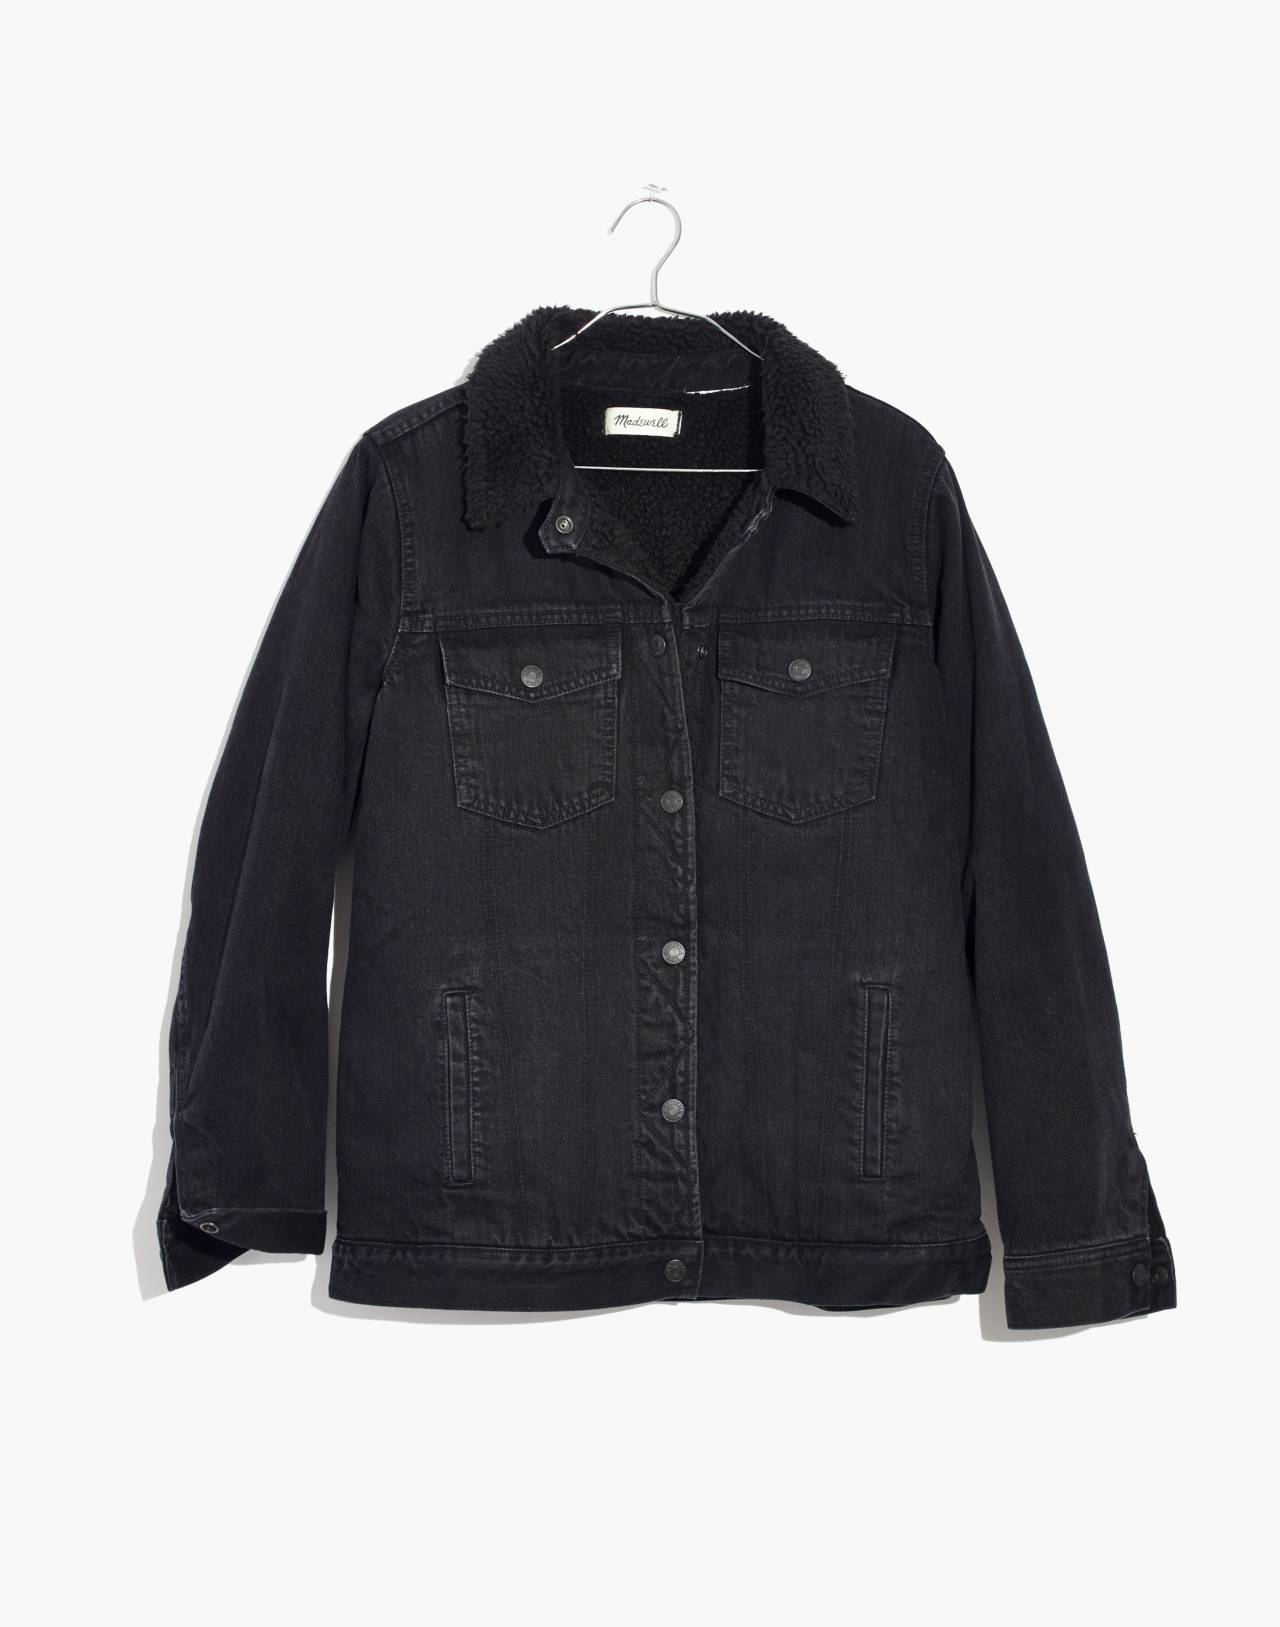 The Oversized Jean Jacket in Gallagher Black: Sherpa Edition in gallagher wash image 4